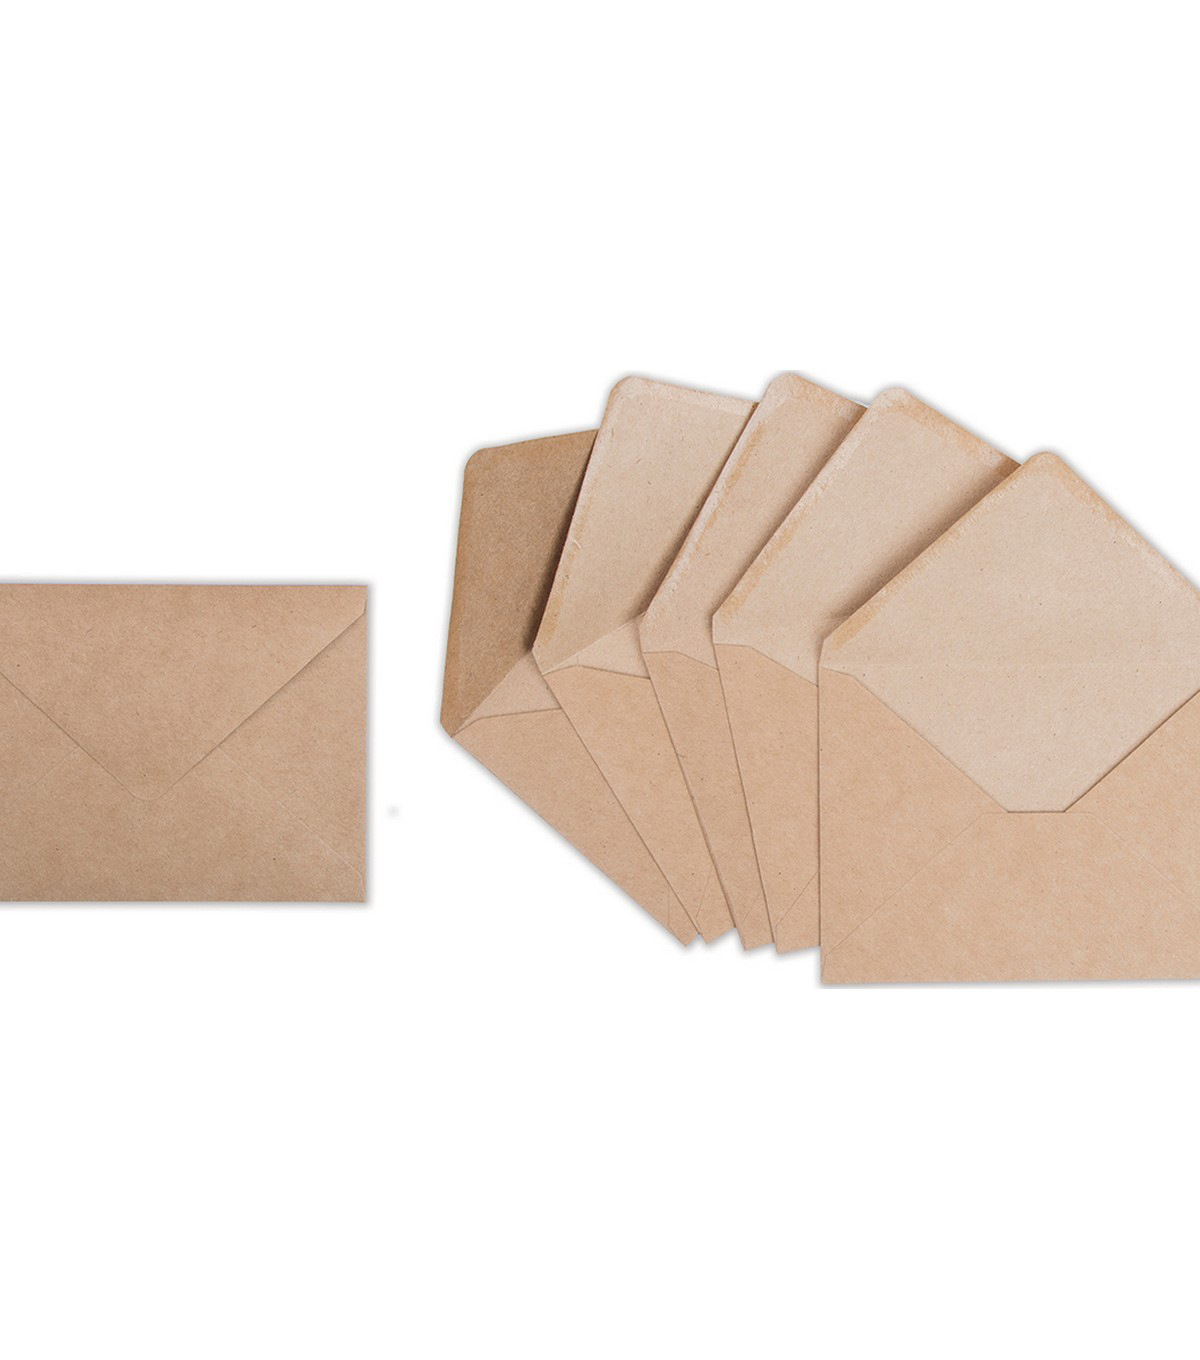 Sizzix Paper Envelopes A7 6/Pkg-Kraft